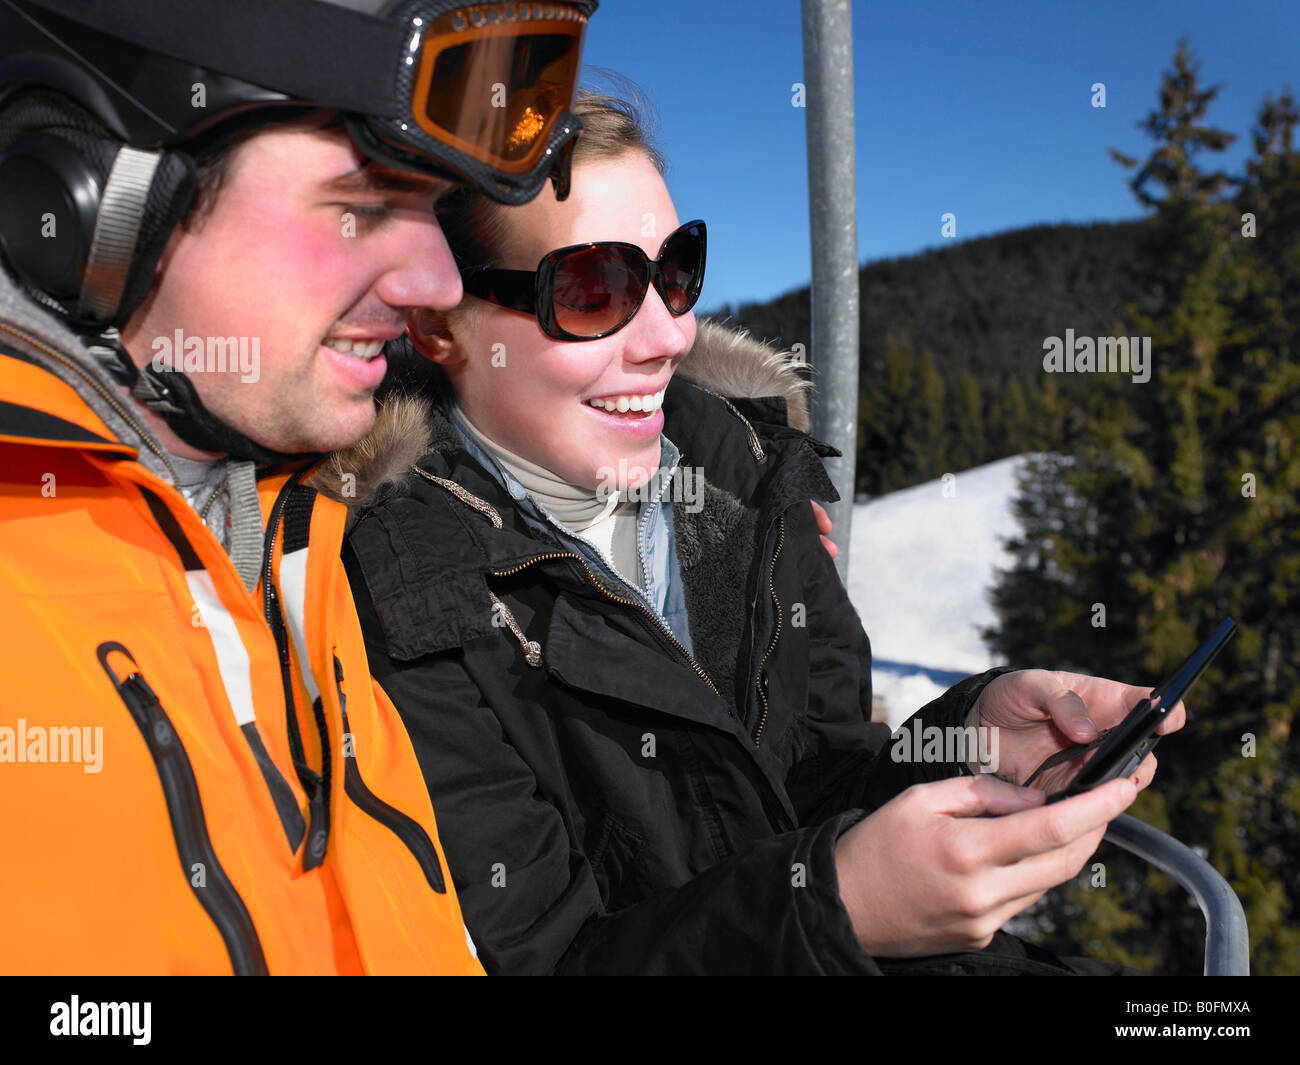 Couple playing game on ski-lift - Stock Image